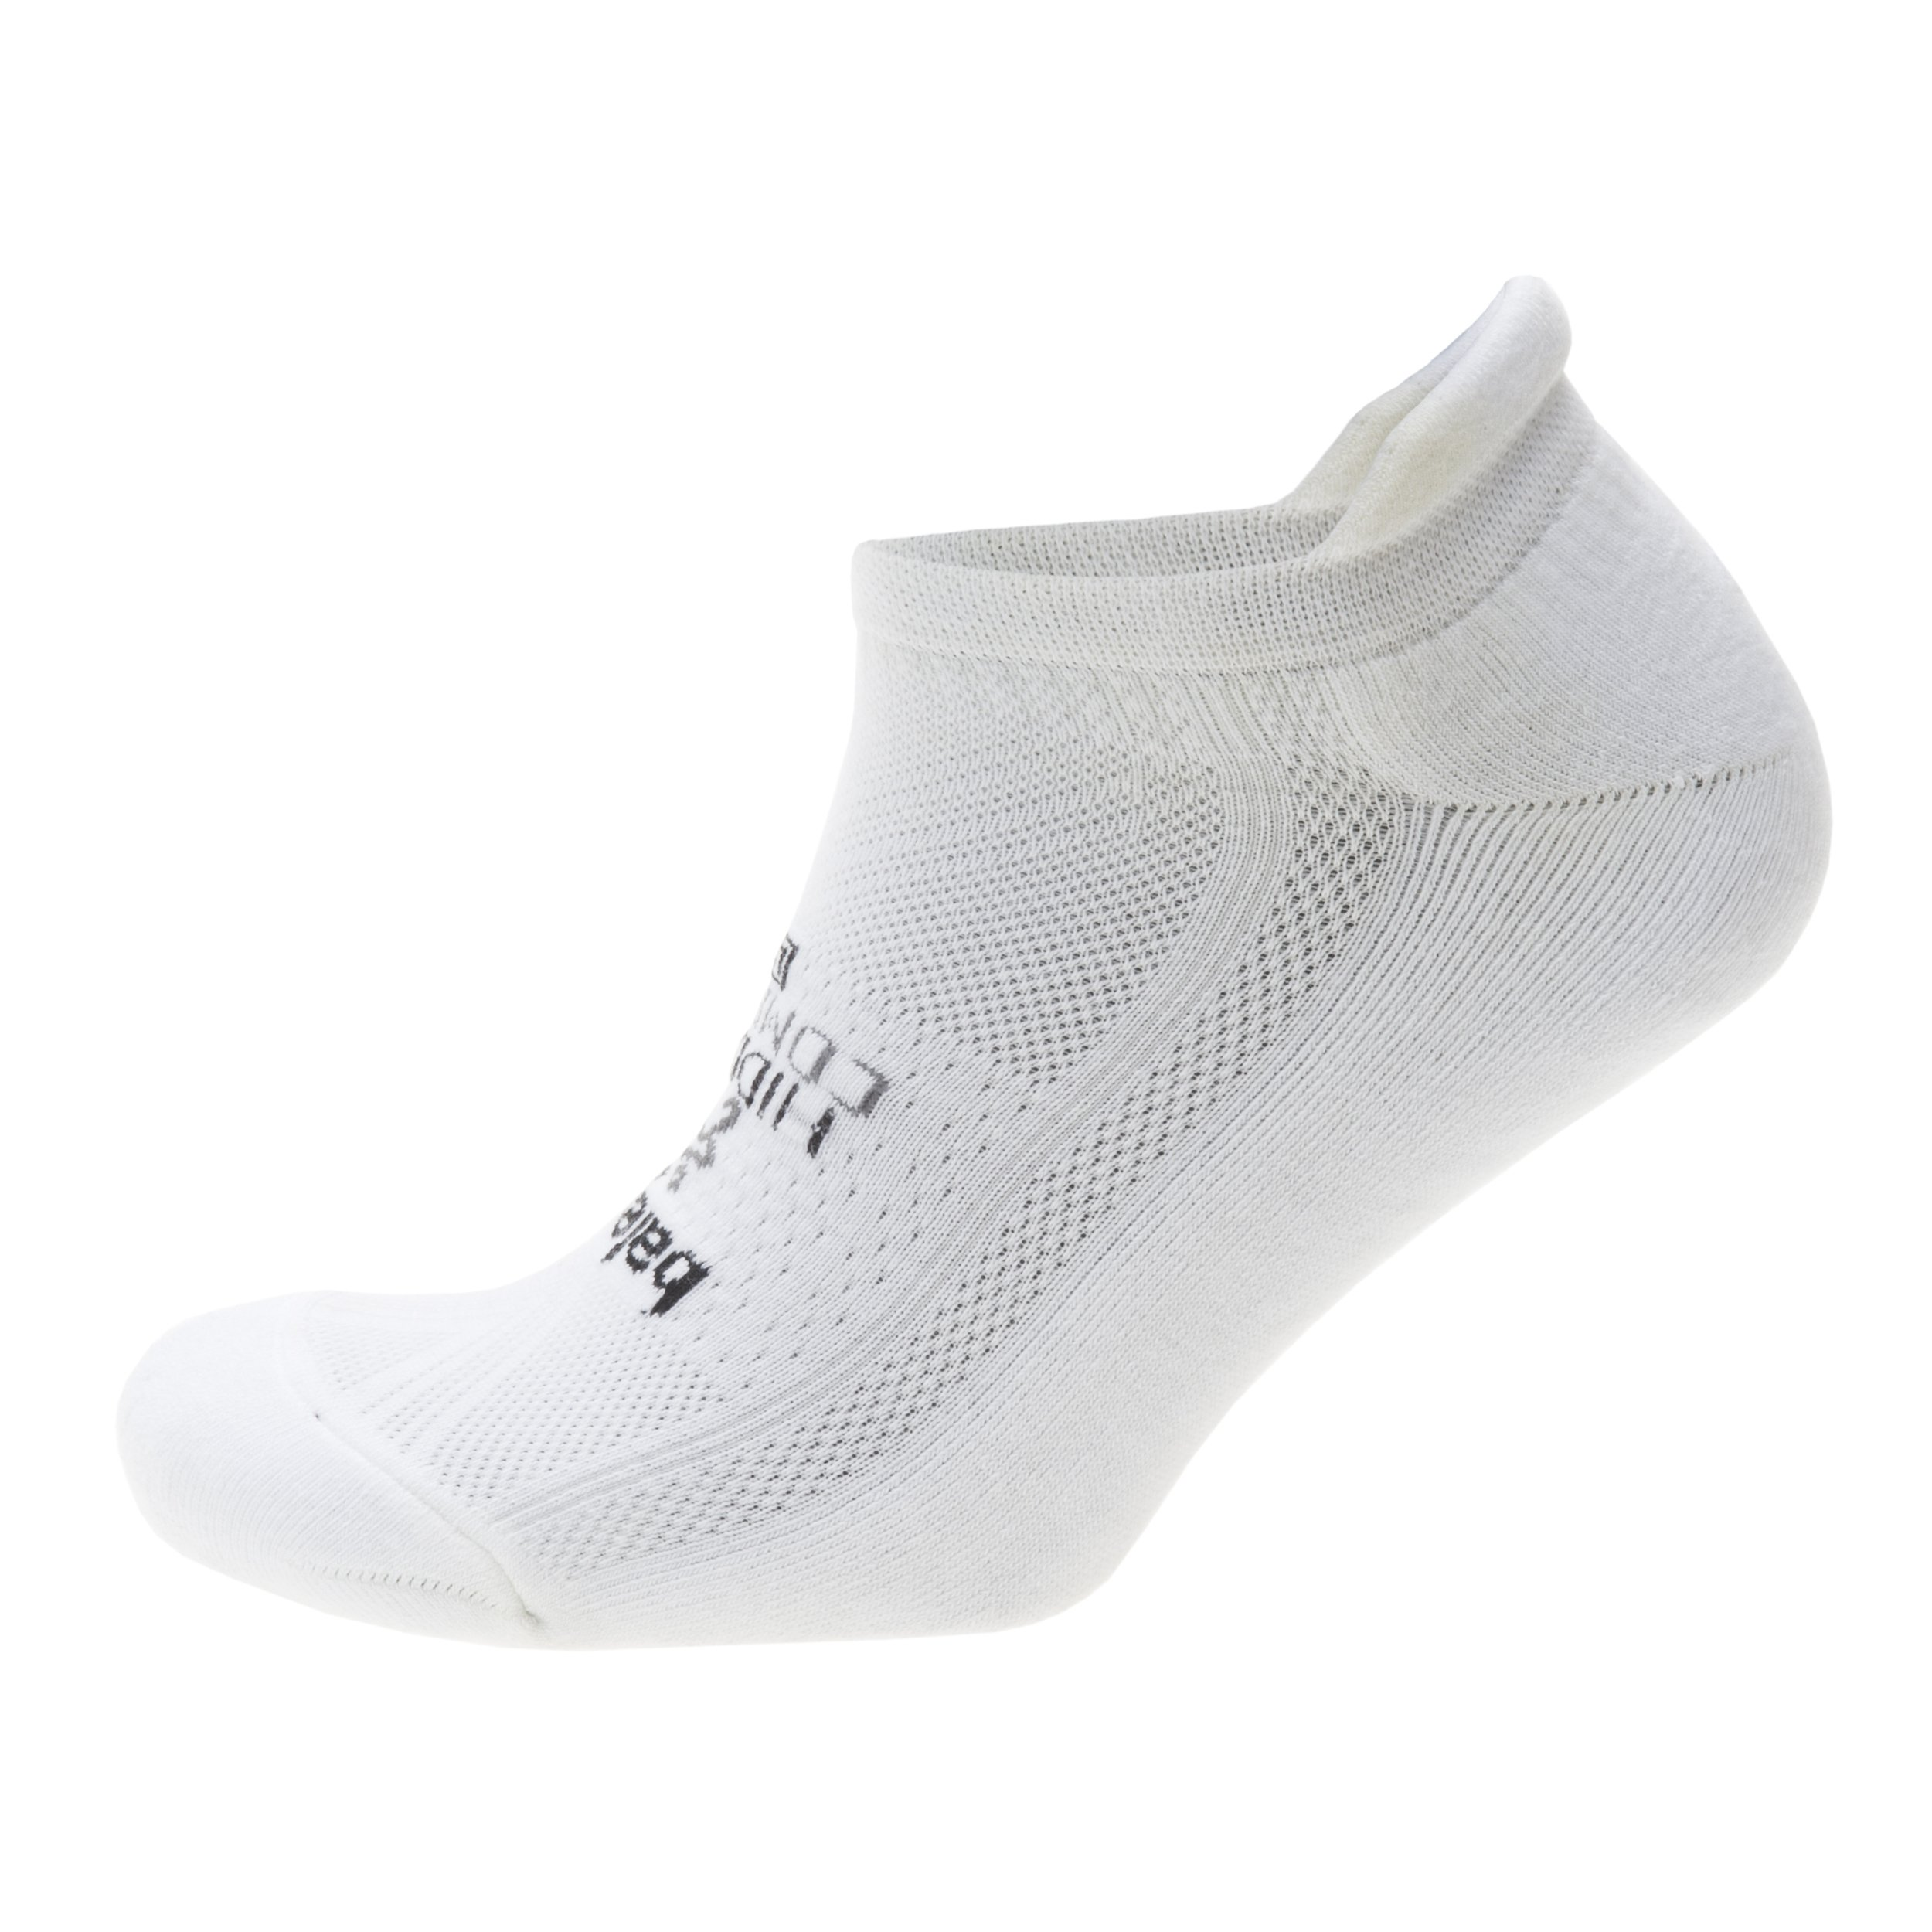 Balega Hidden Comfort No-Show Running Socks for Men and Women (1 Pair), White, Small by Balega